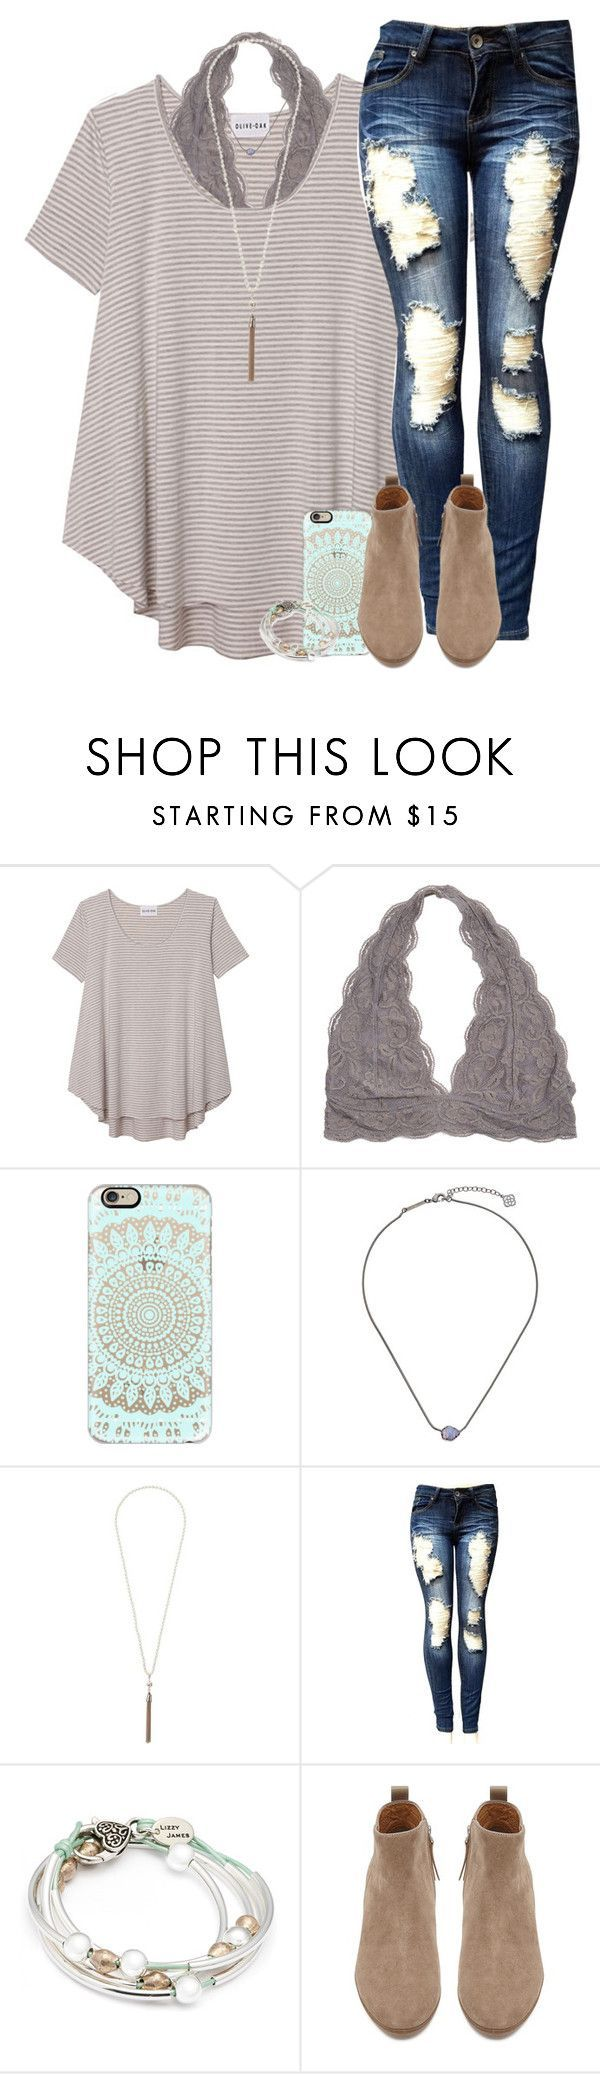 """""""100 questions nobody asks tag:)"""" by wrigley67 ❤ liked on Polyvore featuring Olive + Oak, Casetify, Kendra Scott, Wallis, Lizzy James and Witchery #dressescasual"""